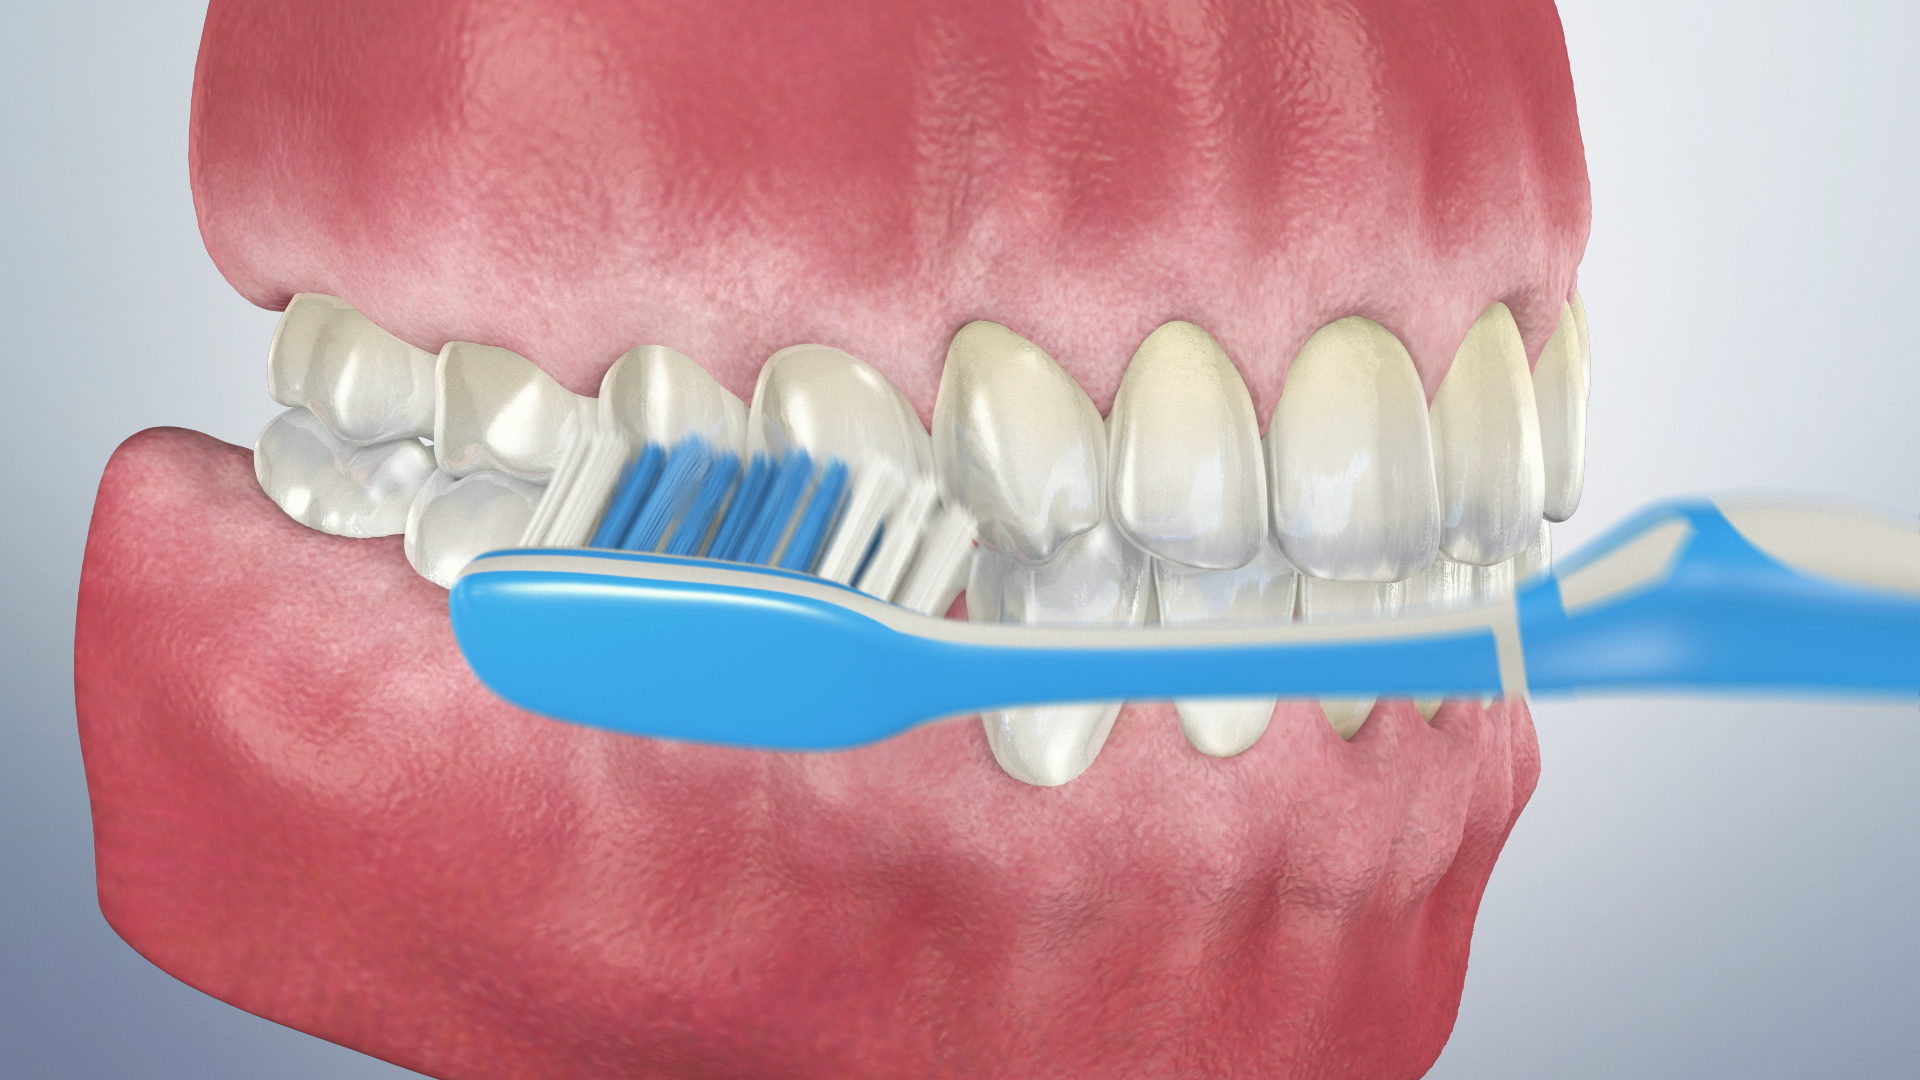 Thumbnail for a video on Proper Toothbrushing Technique